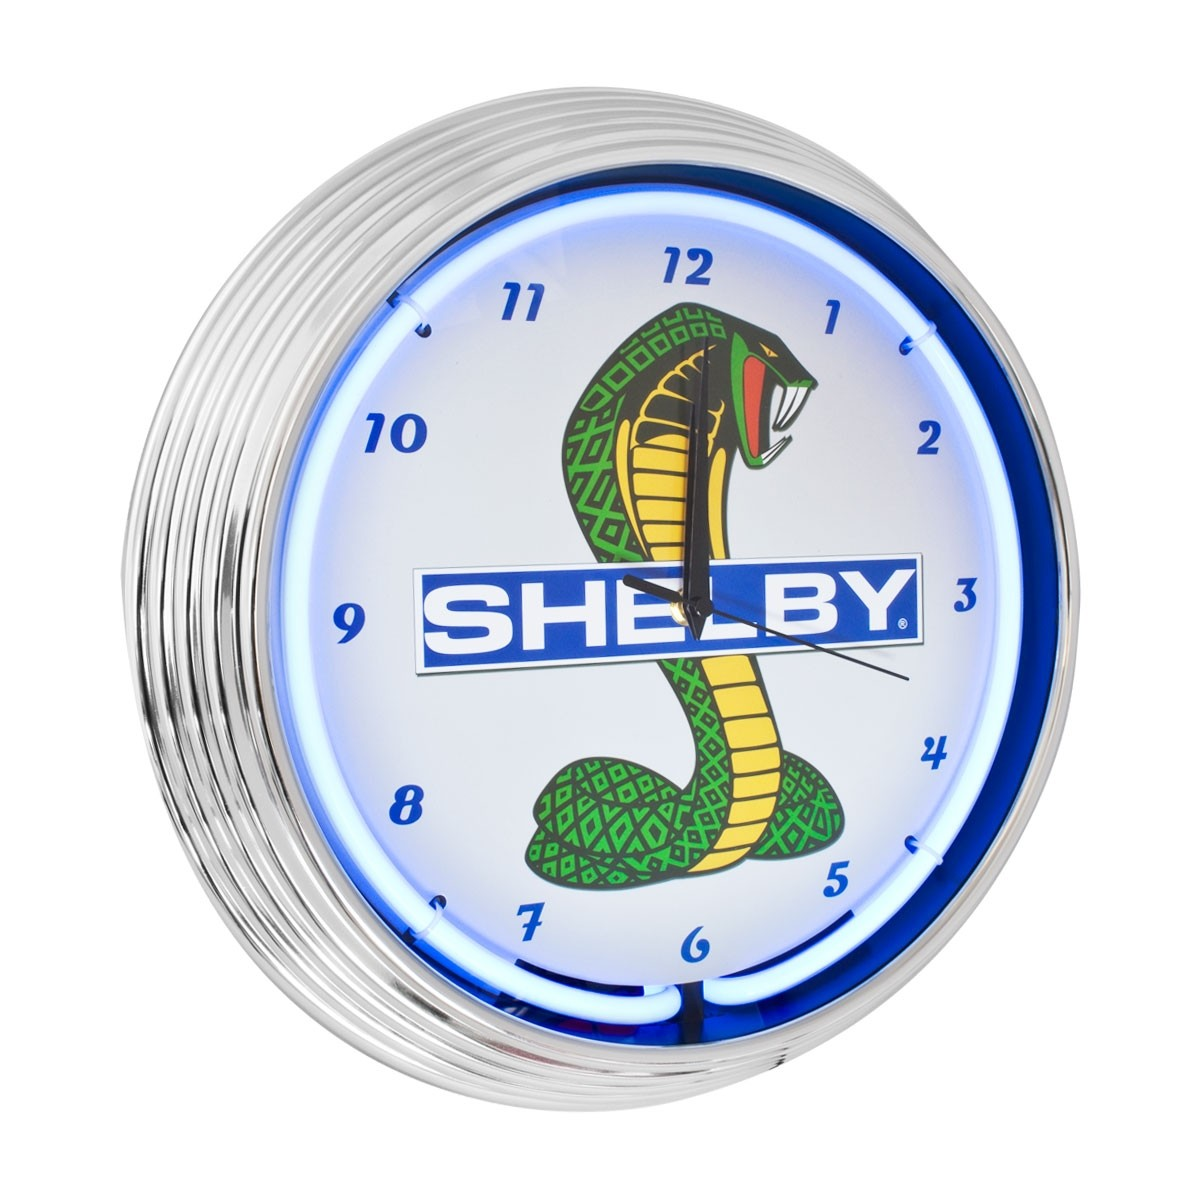 Ford Shelby Cobra Mustang Neon Garage Man Cave Wall Clock Chrome Trim w/ Blue Illumination